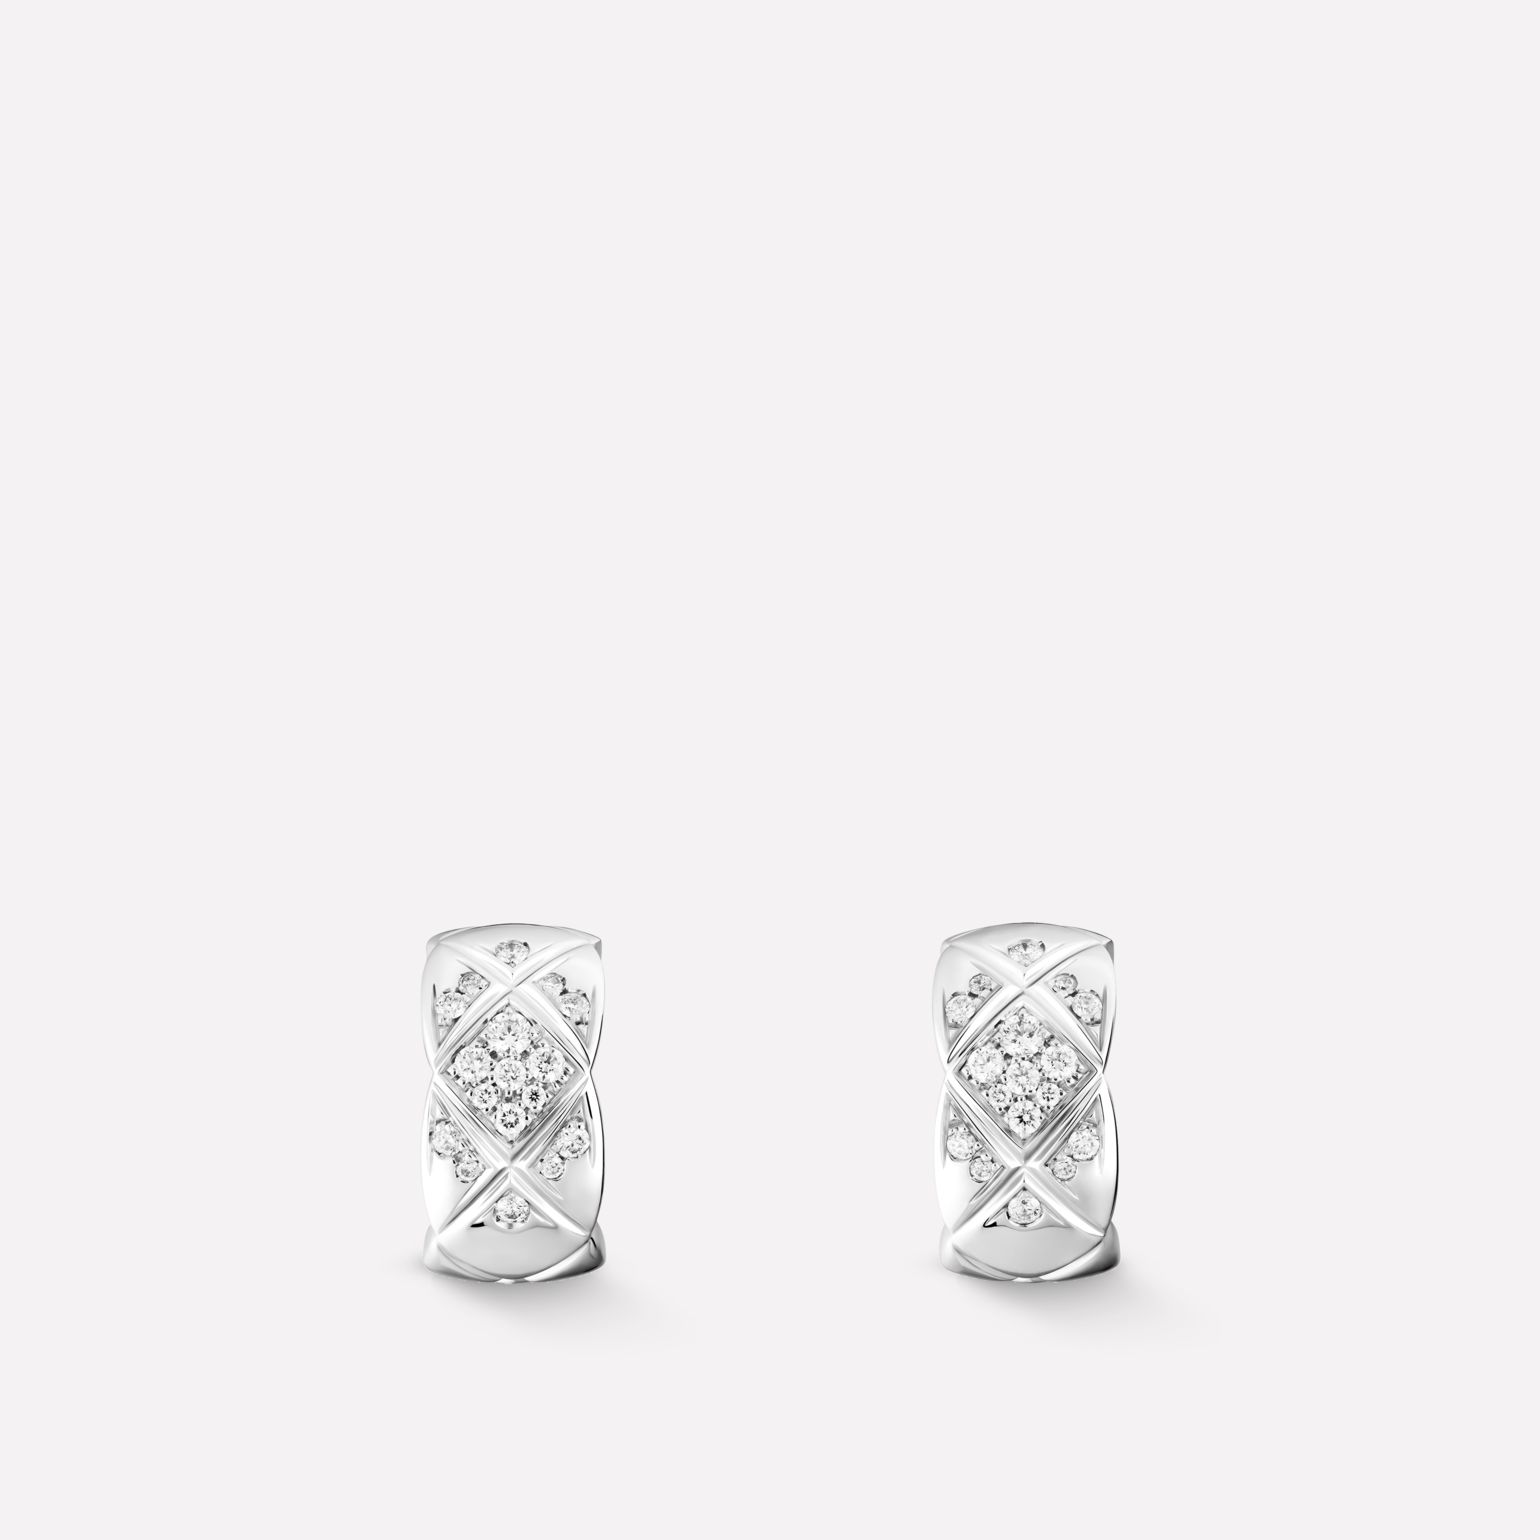 Coco Crush earrings Quilted motif, 18K white gold, diamonds